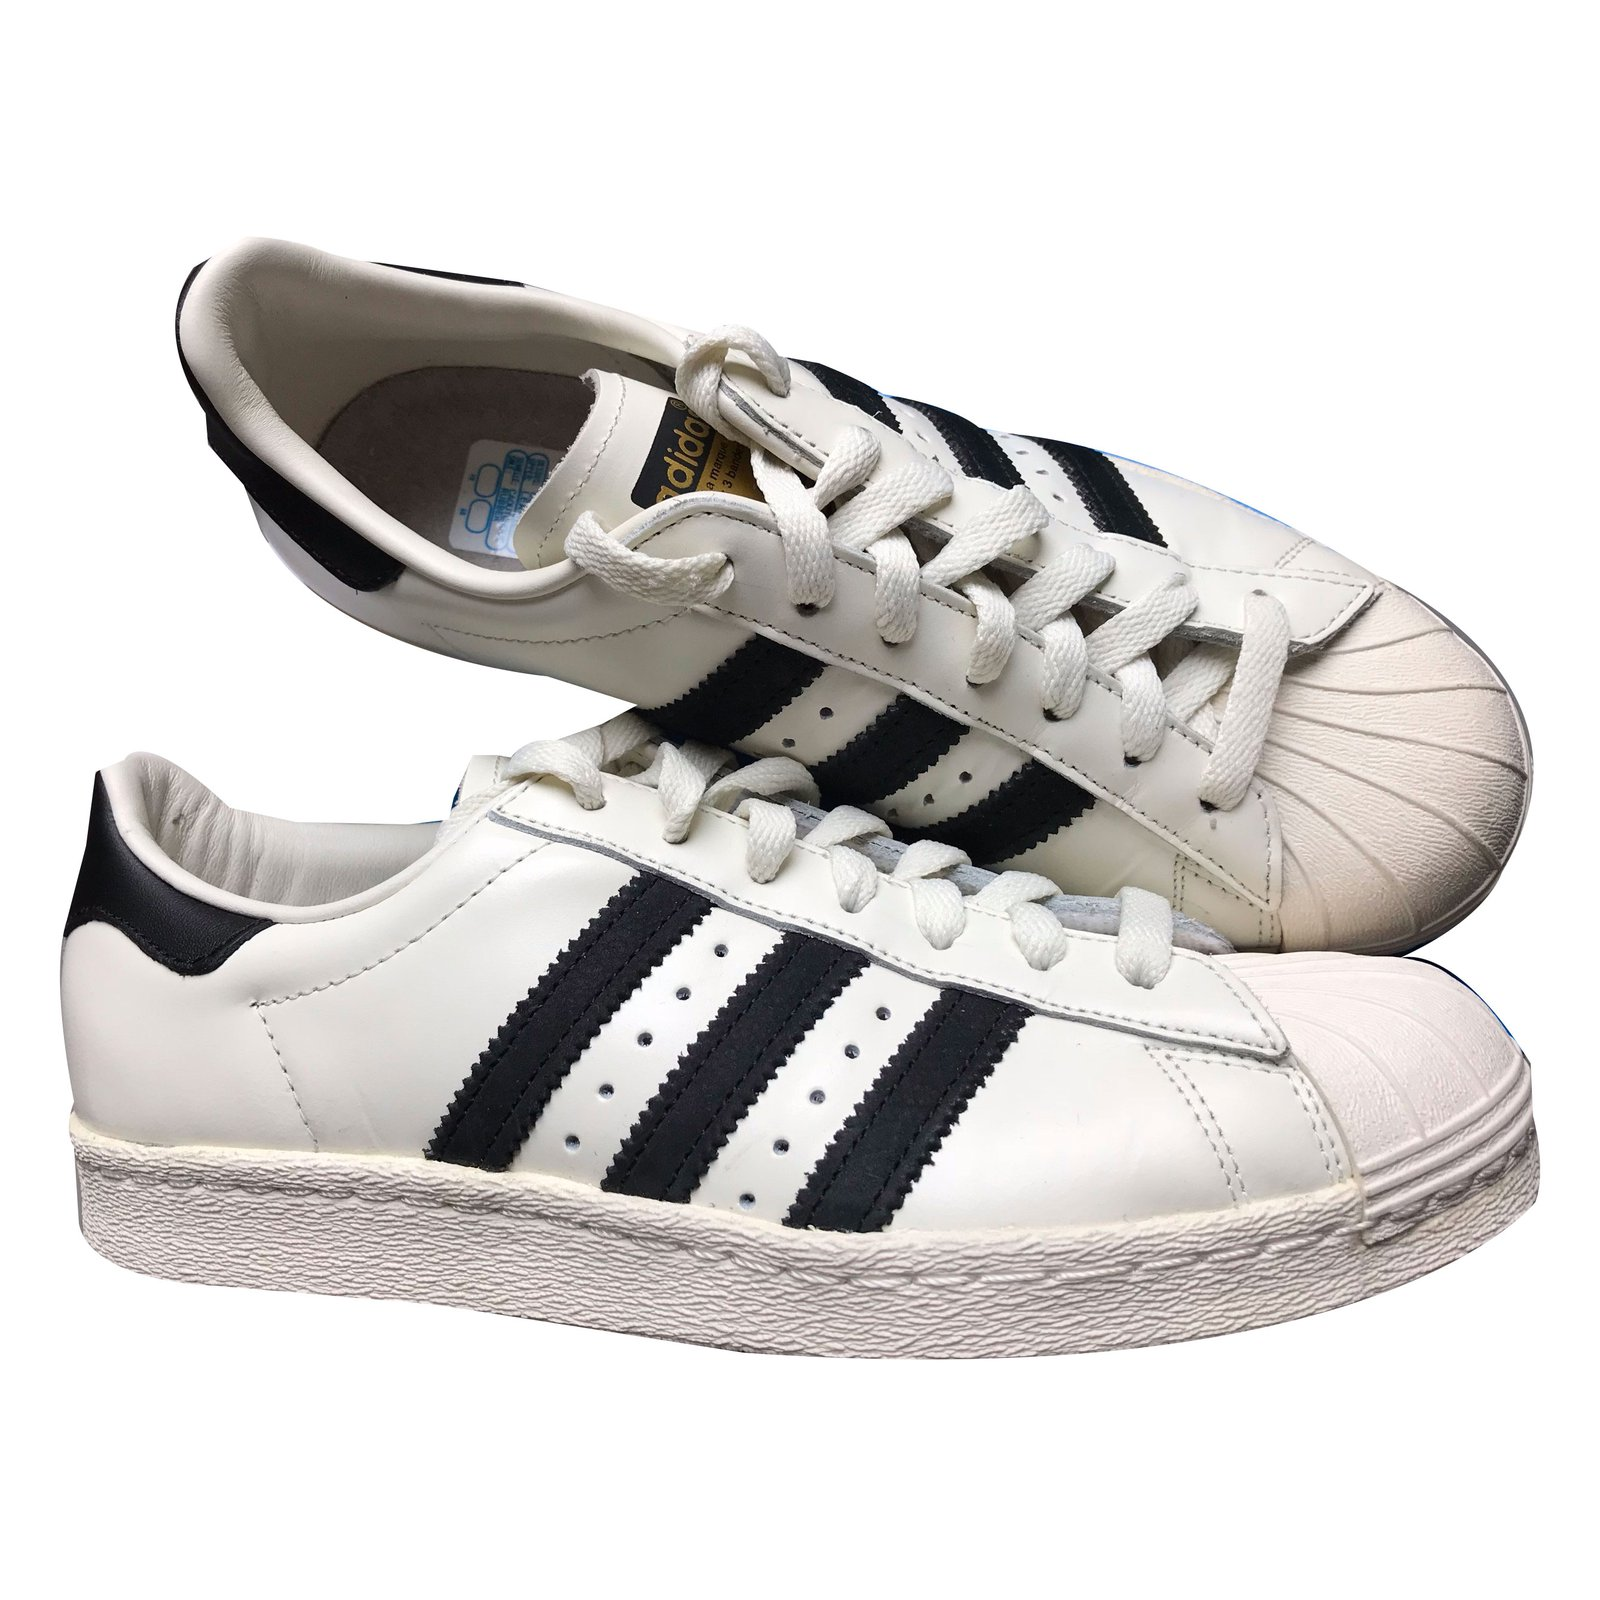 2ed6adec4385 Adidas Superstar 80s DLX Sneakers Leather White ref.48099 - Joli Closet